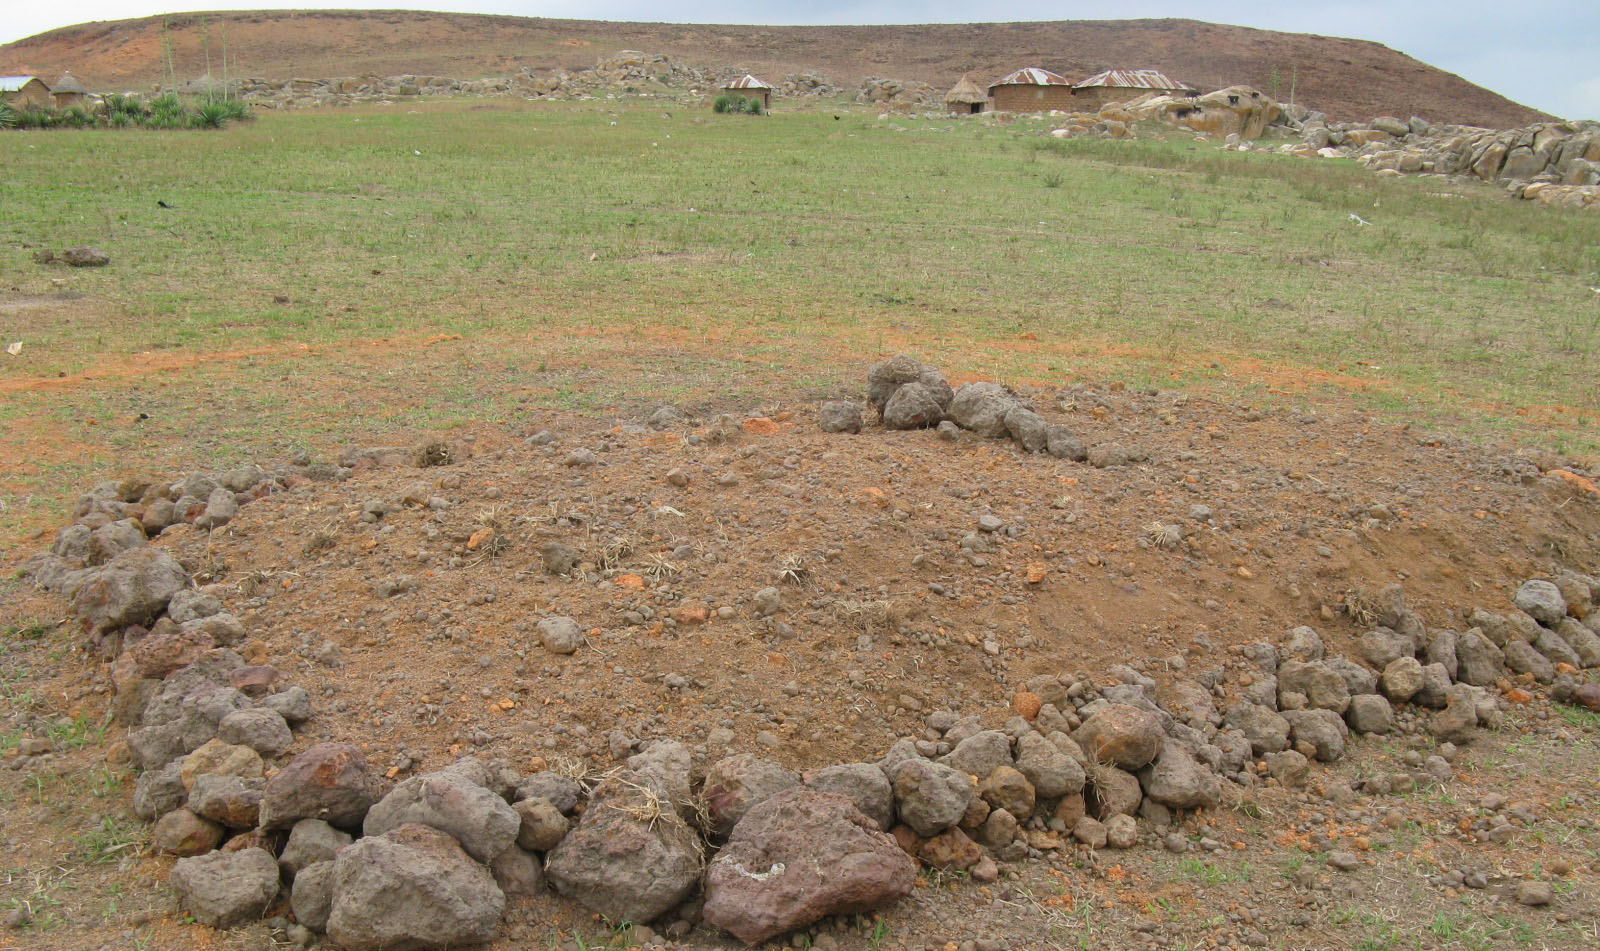 Grave for 15 of the victims of the assault in Mile Bakwai. (Morning Star News photo)